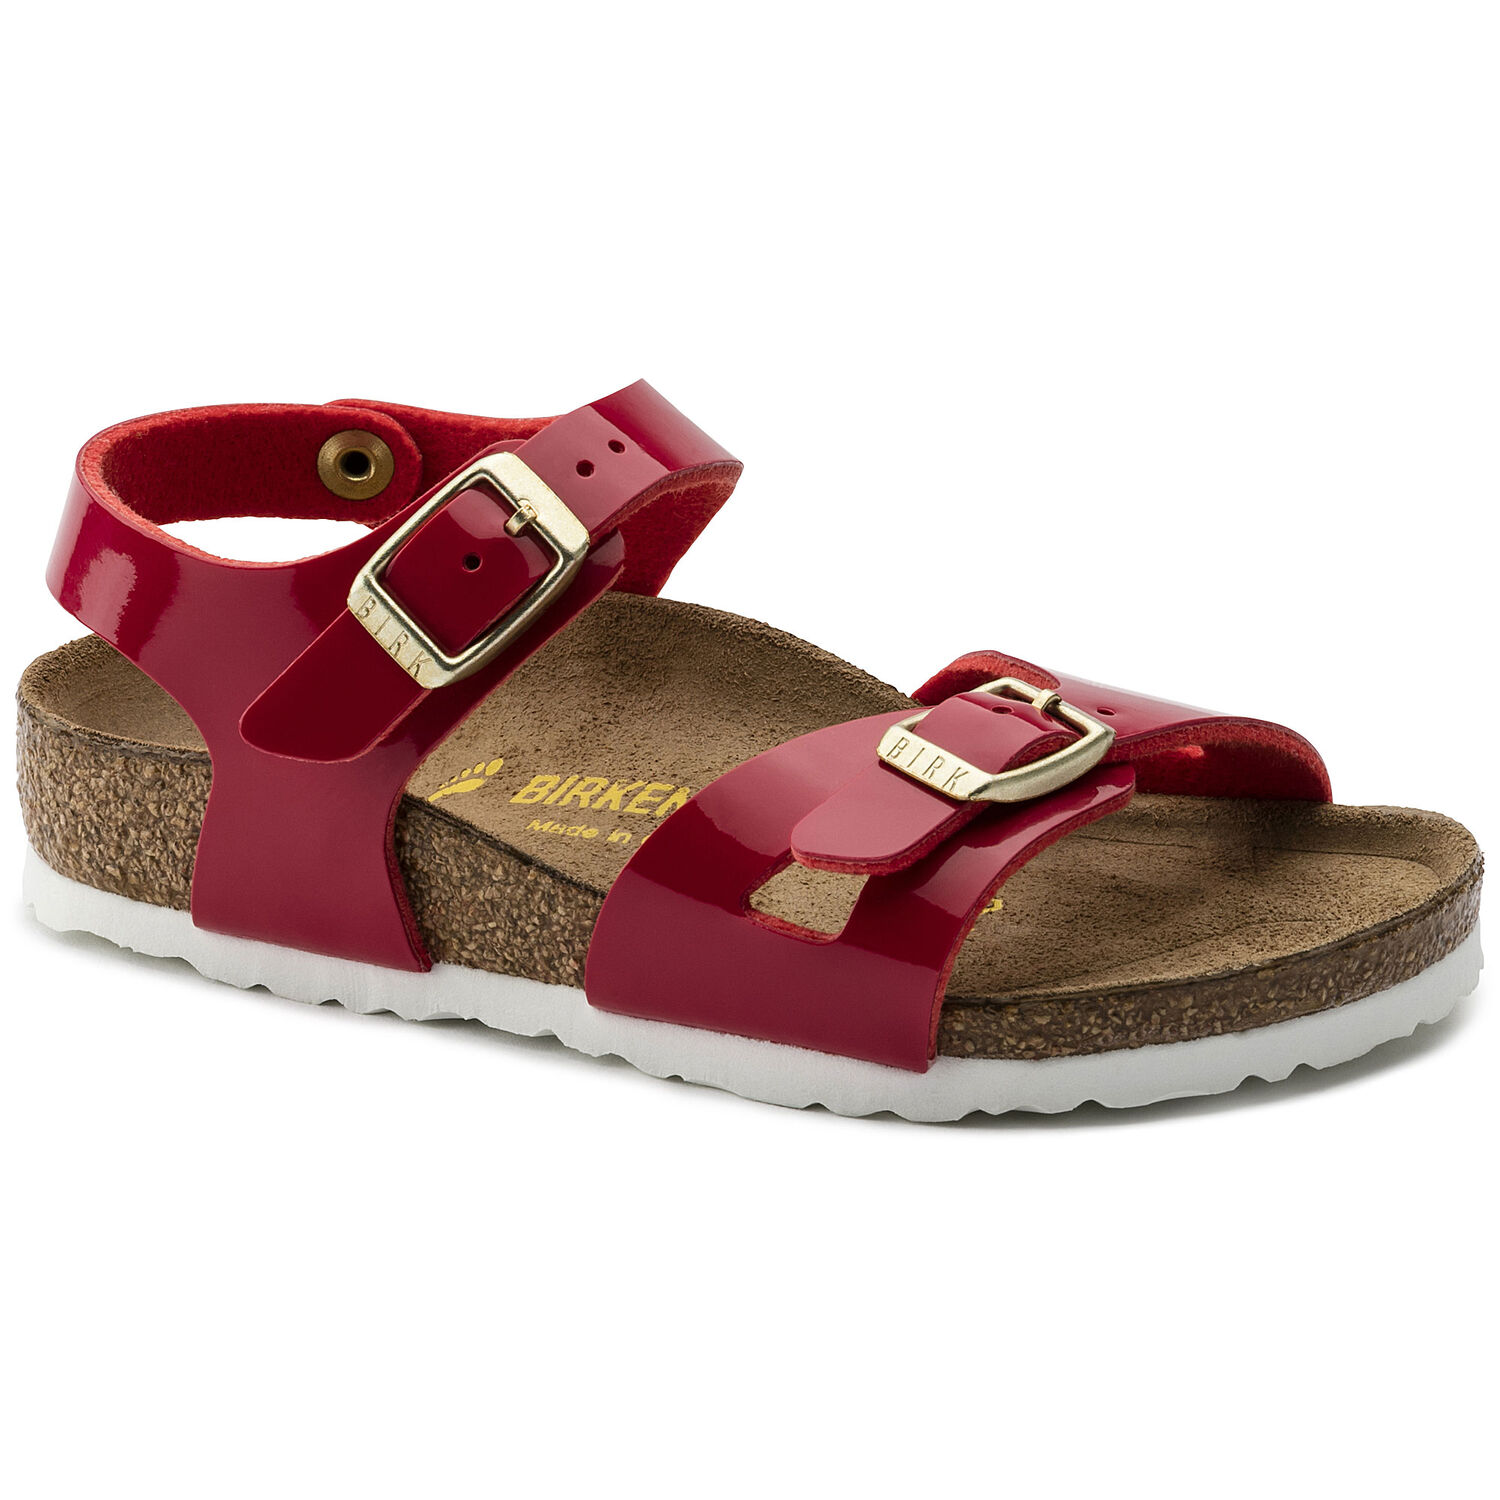 62ffb113 Uk Birkenstock Outlet Flat Comfortable Shoes | UAE CONSULATE